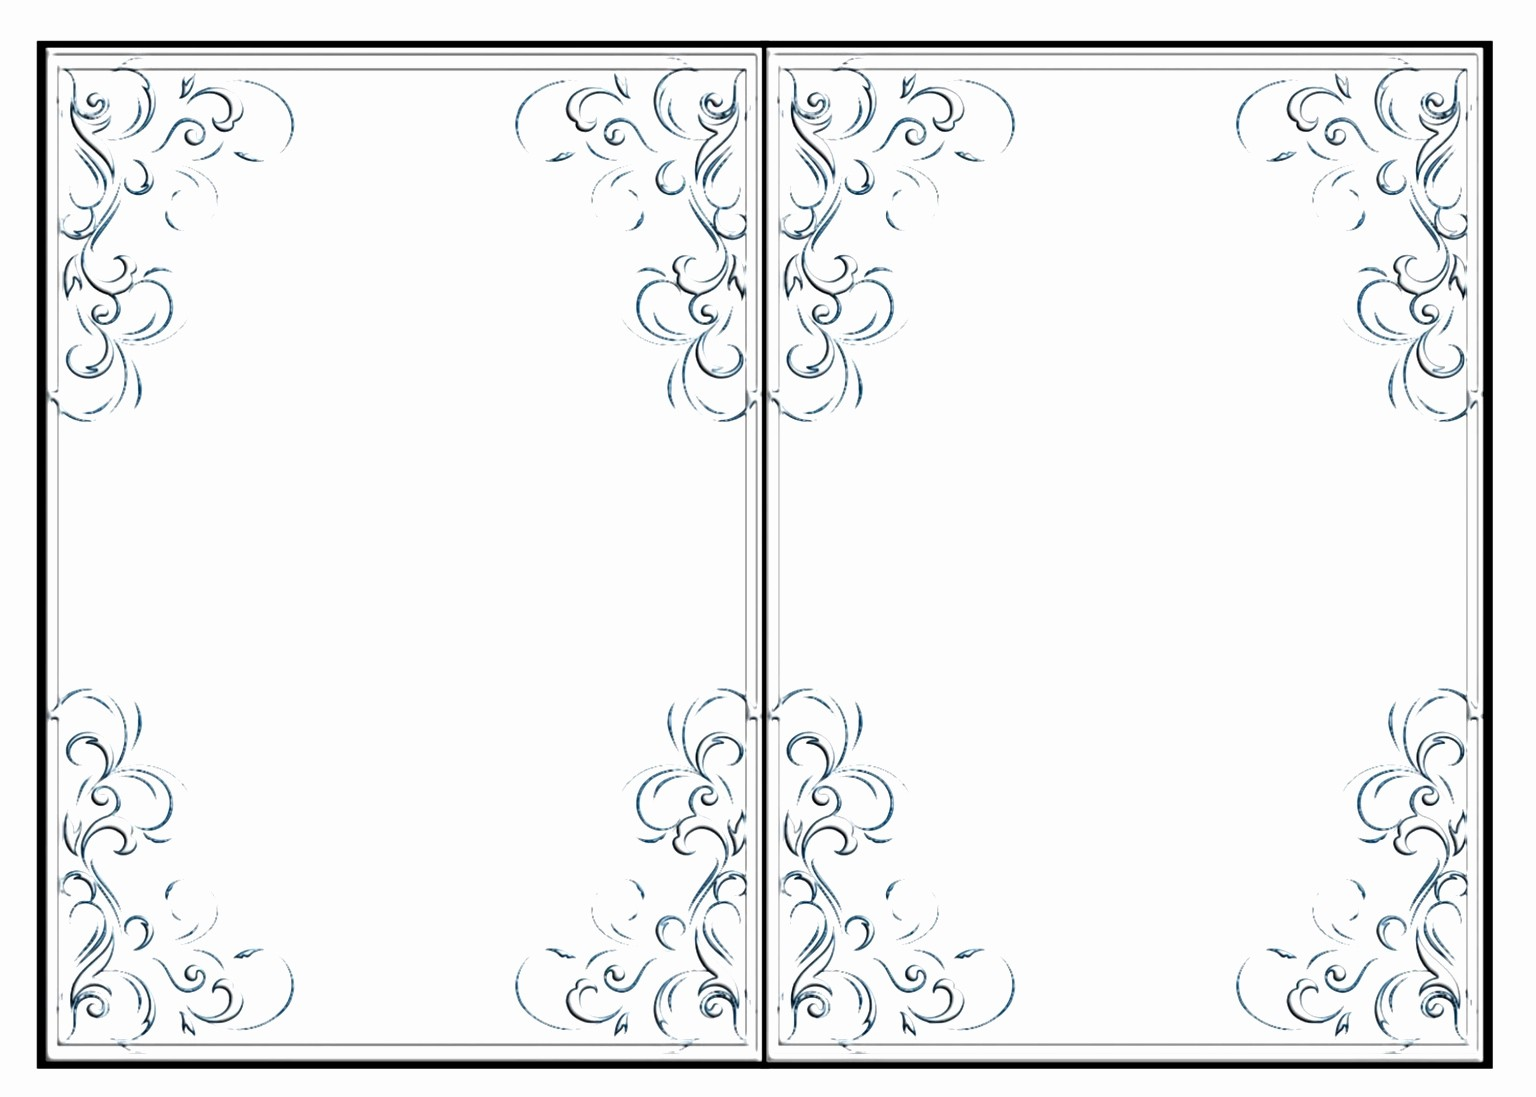 Blank Half Fold Card Template Luxury 12 Blank Half Fold Card Template Tutaa